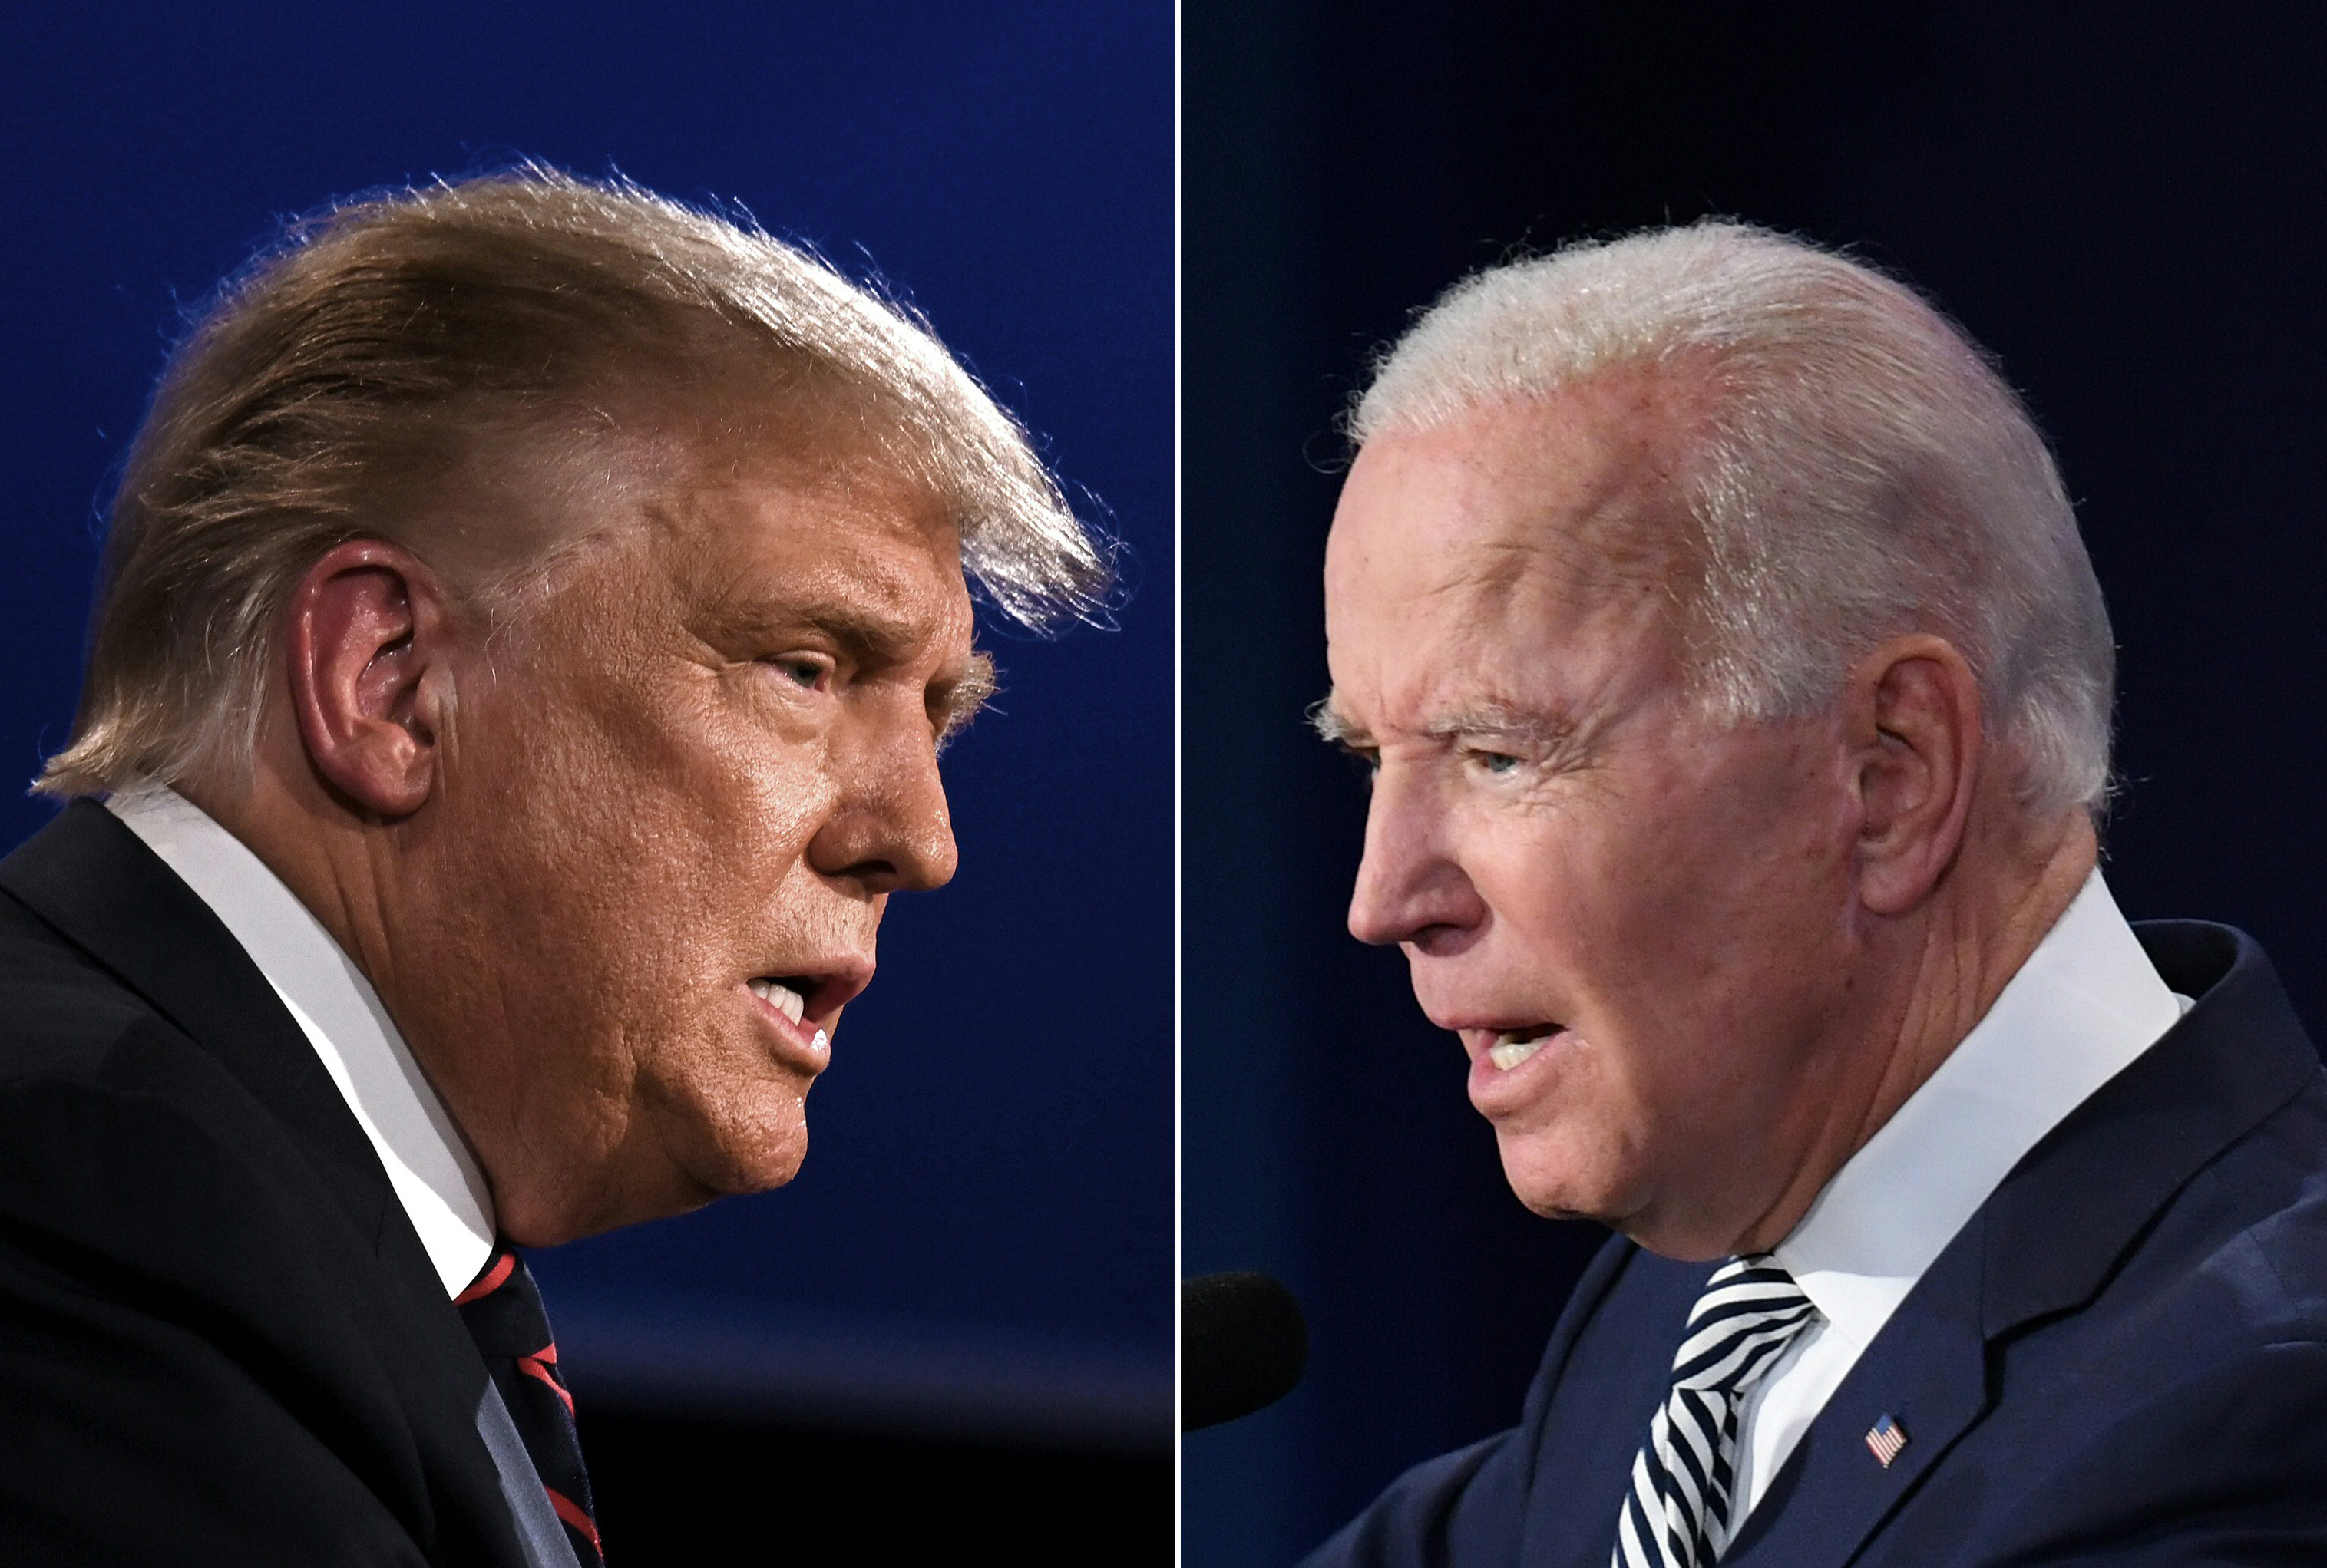 With one week until election, Biden's lead over Trump is 3.5 times higher than Clinton's was in 2016